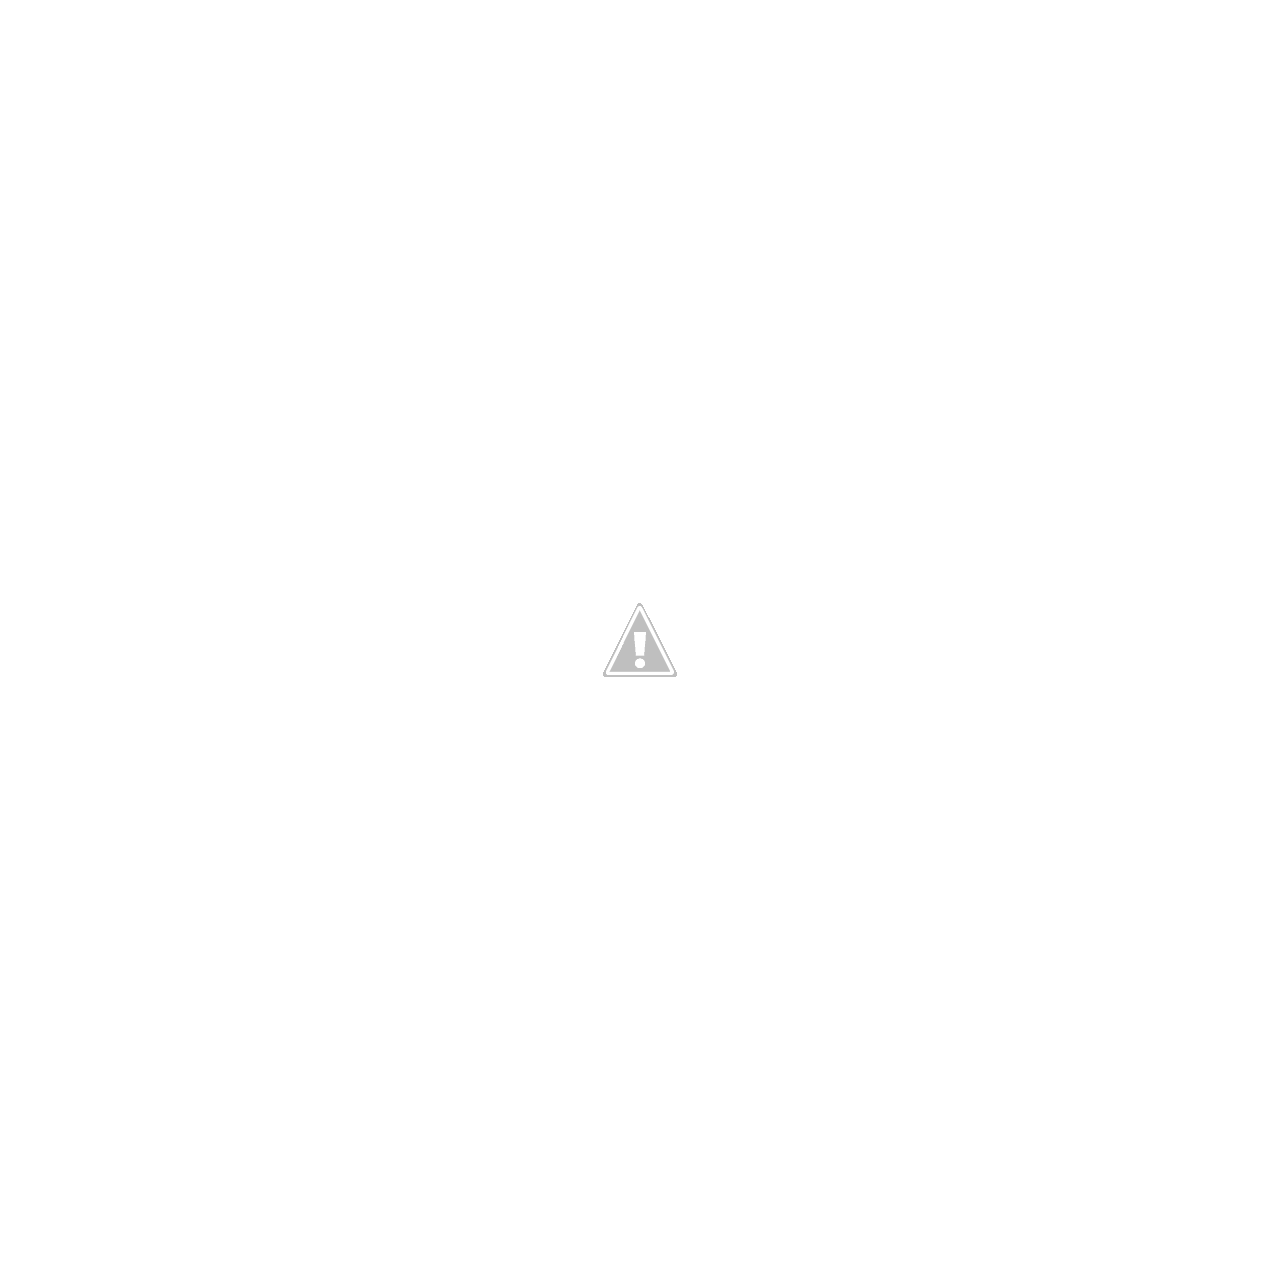 Ceiling Shop In Lahore Ceiling Design Ceiling Labour False Ceiling Contractor Wall Moulding Wall Panelling Habib Sons False Ceiling Ceiling Supplier In Lahore